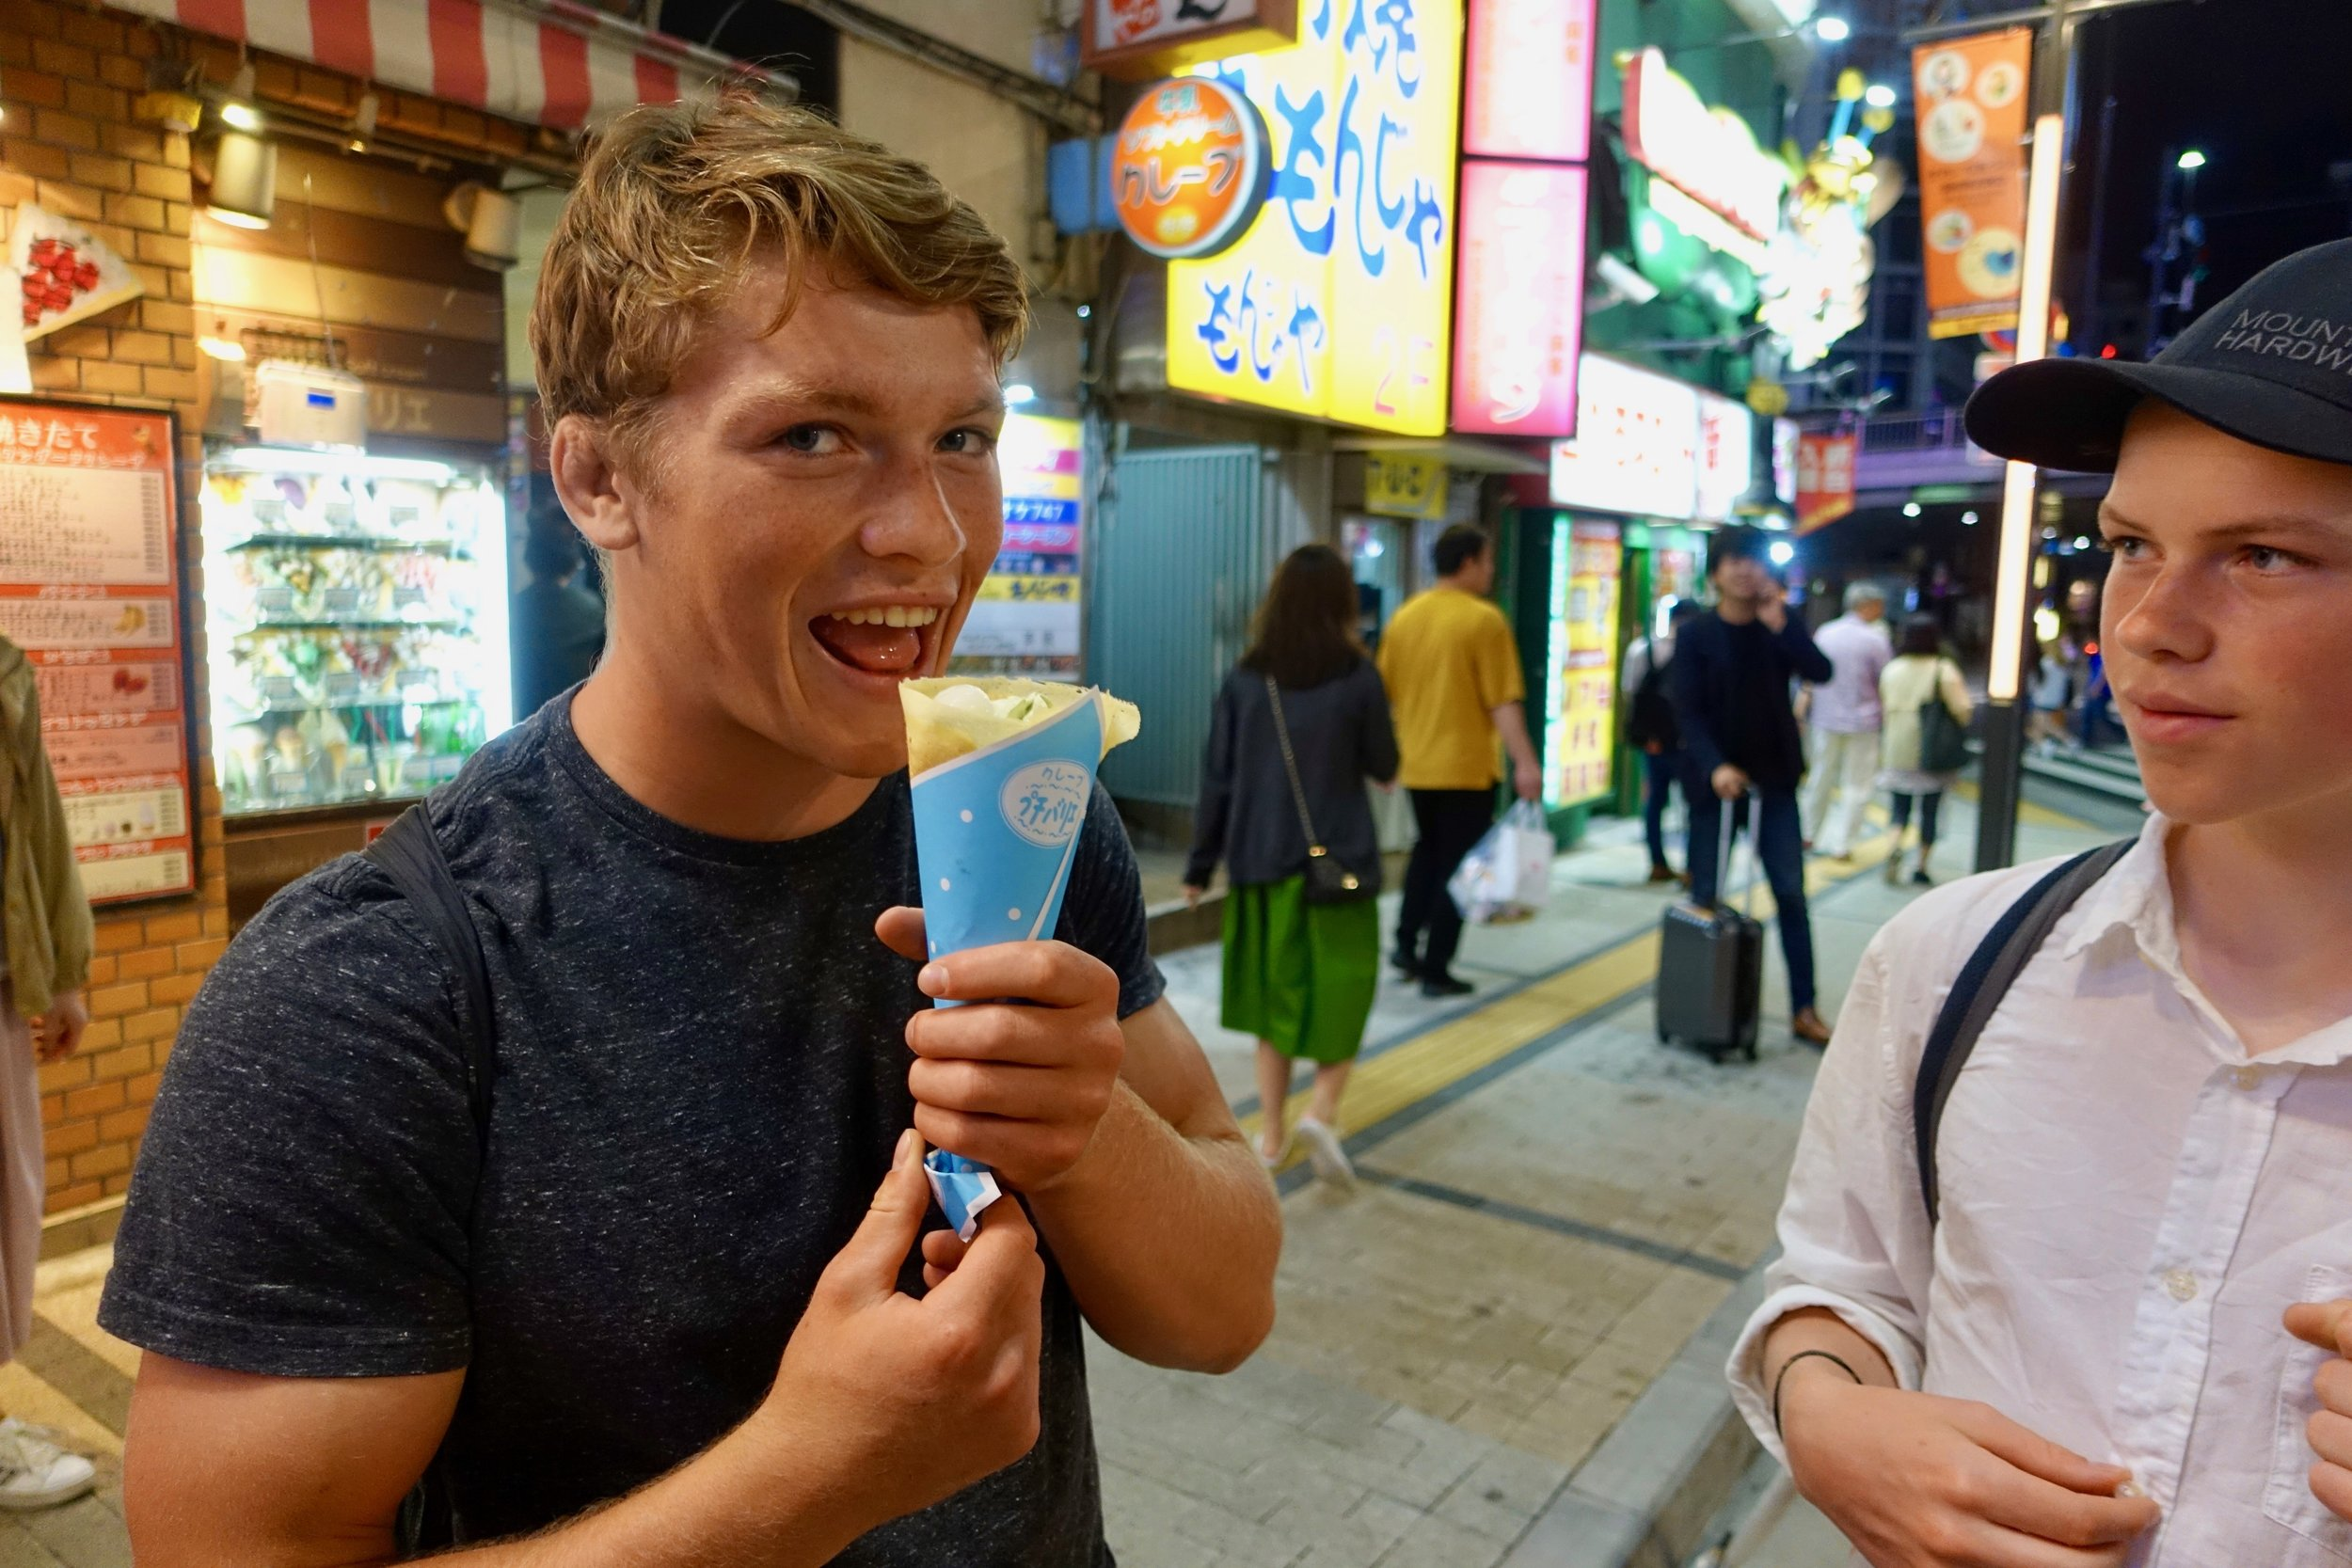 So much good food in Japan! We were on a non-stop search for delicious meals, and snacks.